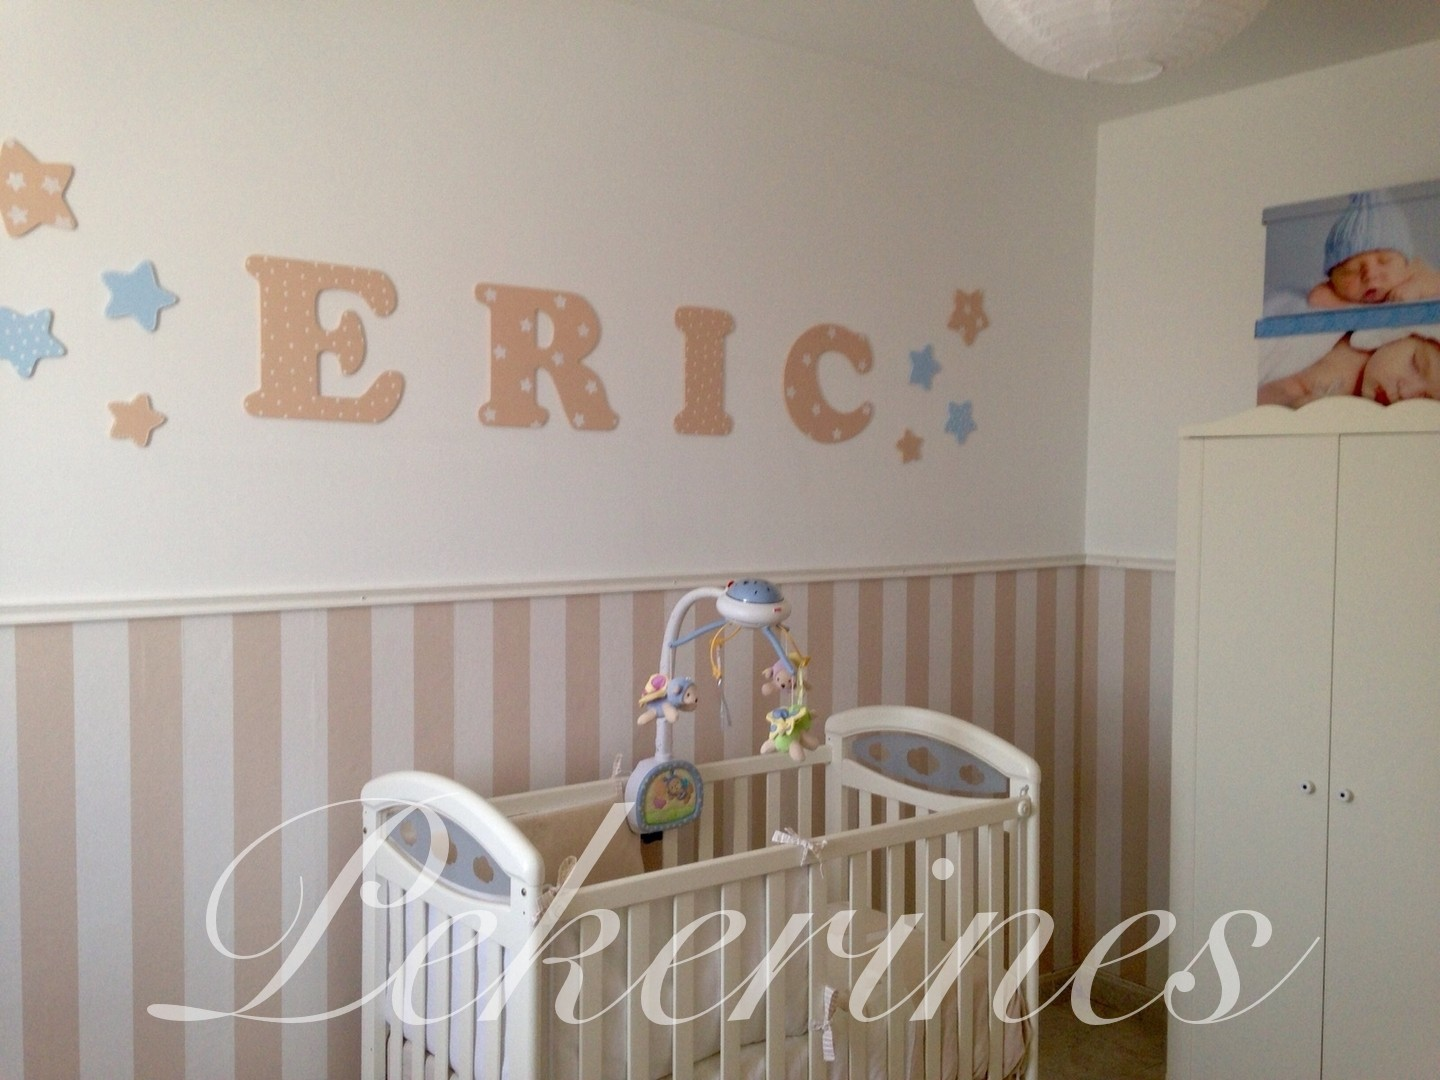 Decoraci n infantil pekerines letras de madera para decorar - Letras bebe decoracion ...